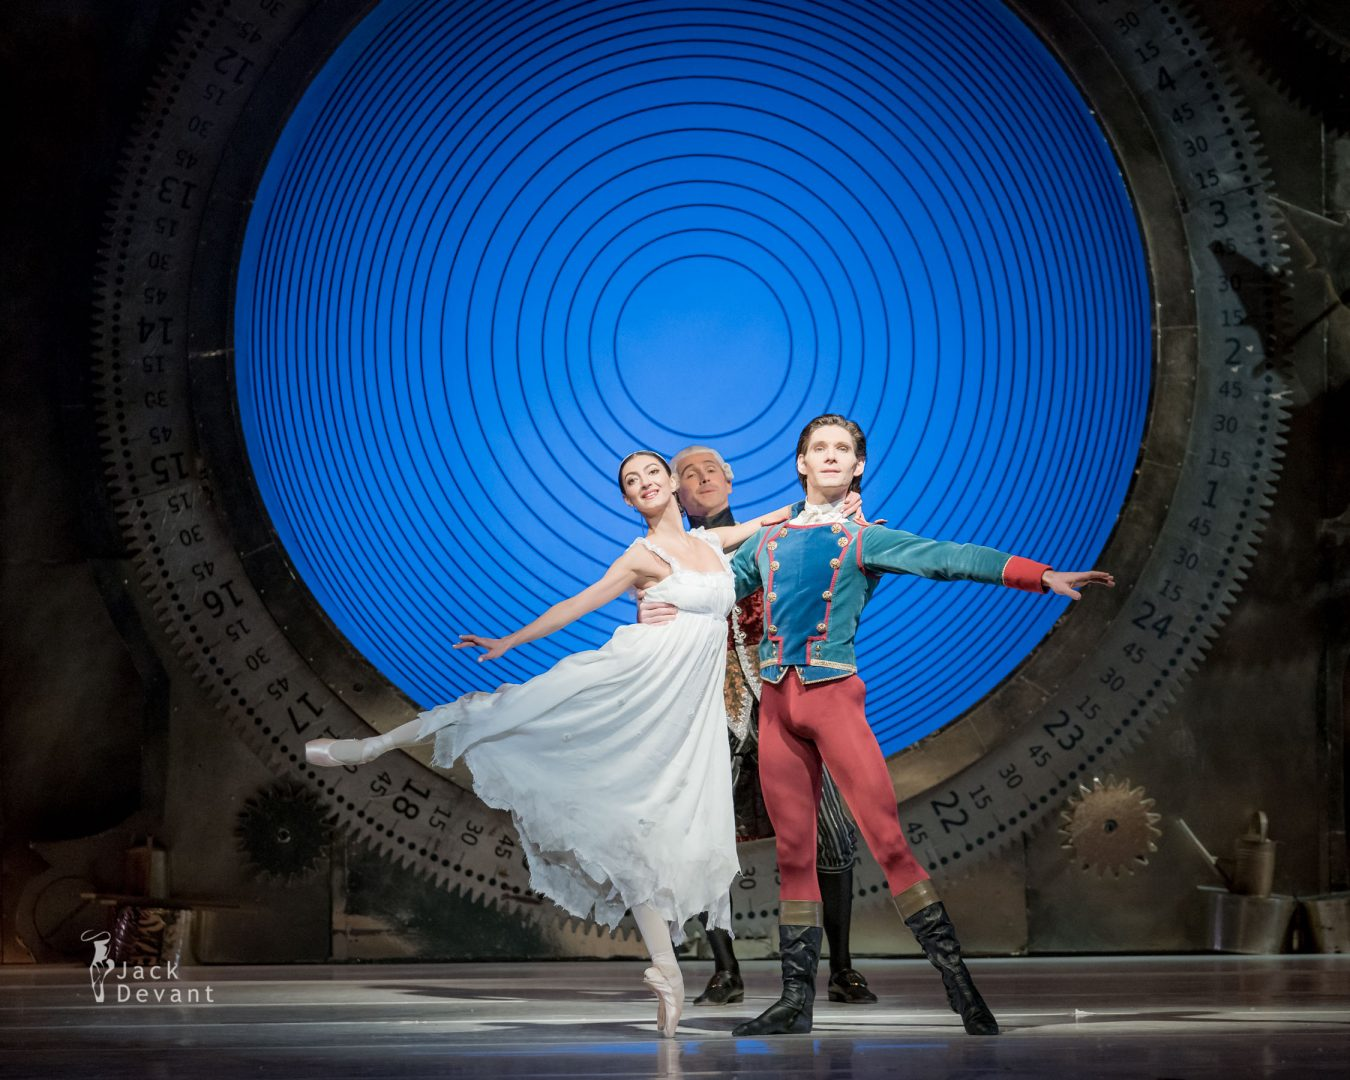 Chinara Alizade and Vladimir Yaroshenko in the Nutcracker 9